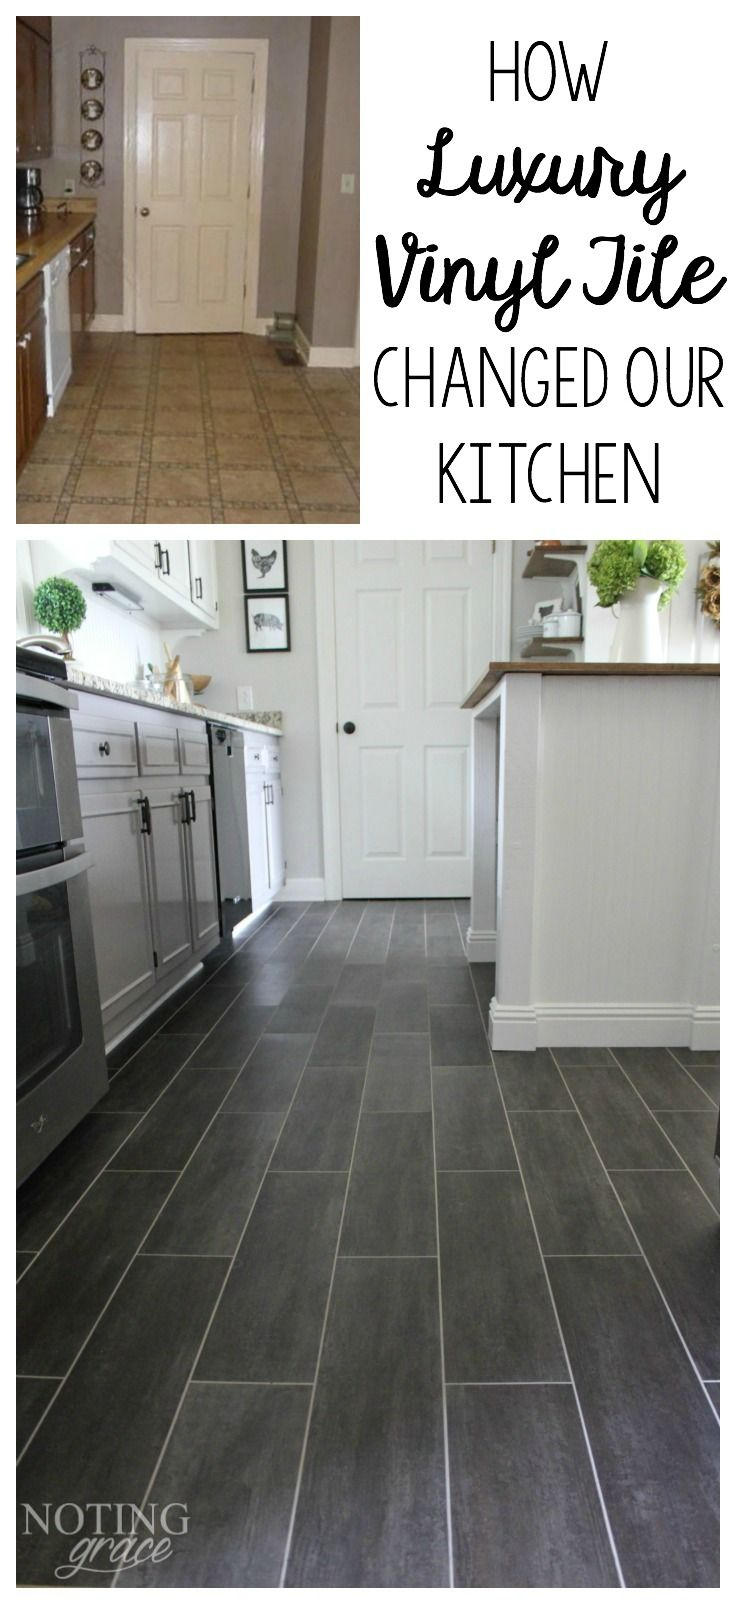 Diy kitchen flooring luxury vinyl tile vinyl tiles and luxury vinyl diy kitchen flooring dailygadgetfo Choice Image